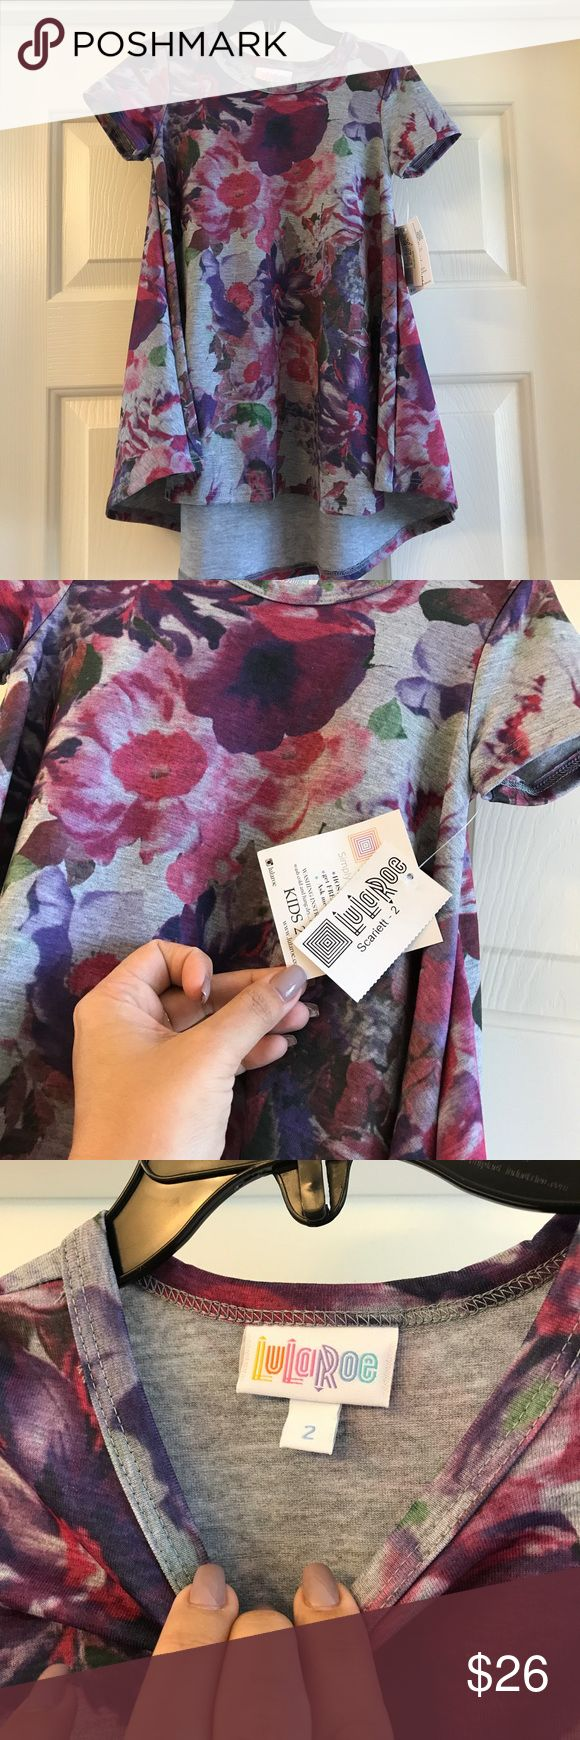 NWT Size 2 Lularoe Scarlett dress Brand new with tags Scarlett dress from Lularoe. It's the kid's version of the Carly dress. Bundle and save! LuLaRoe Dresses Casual